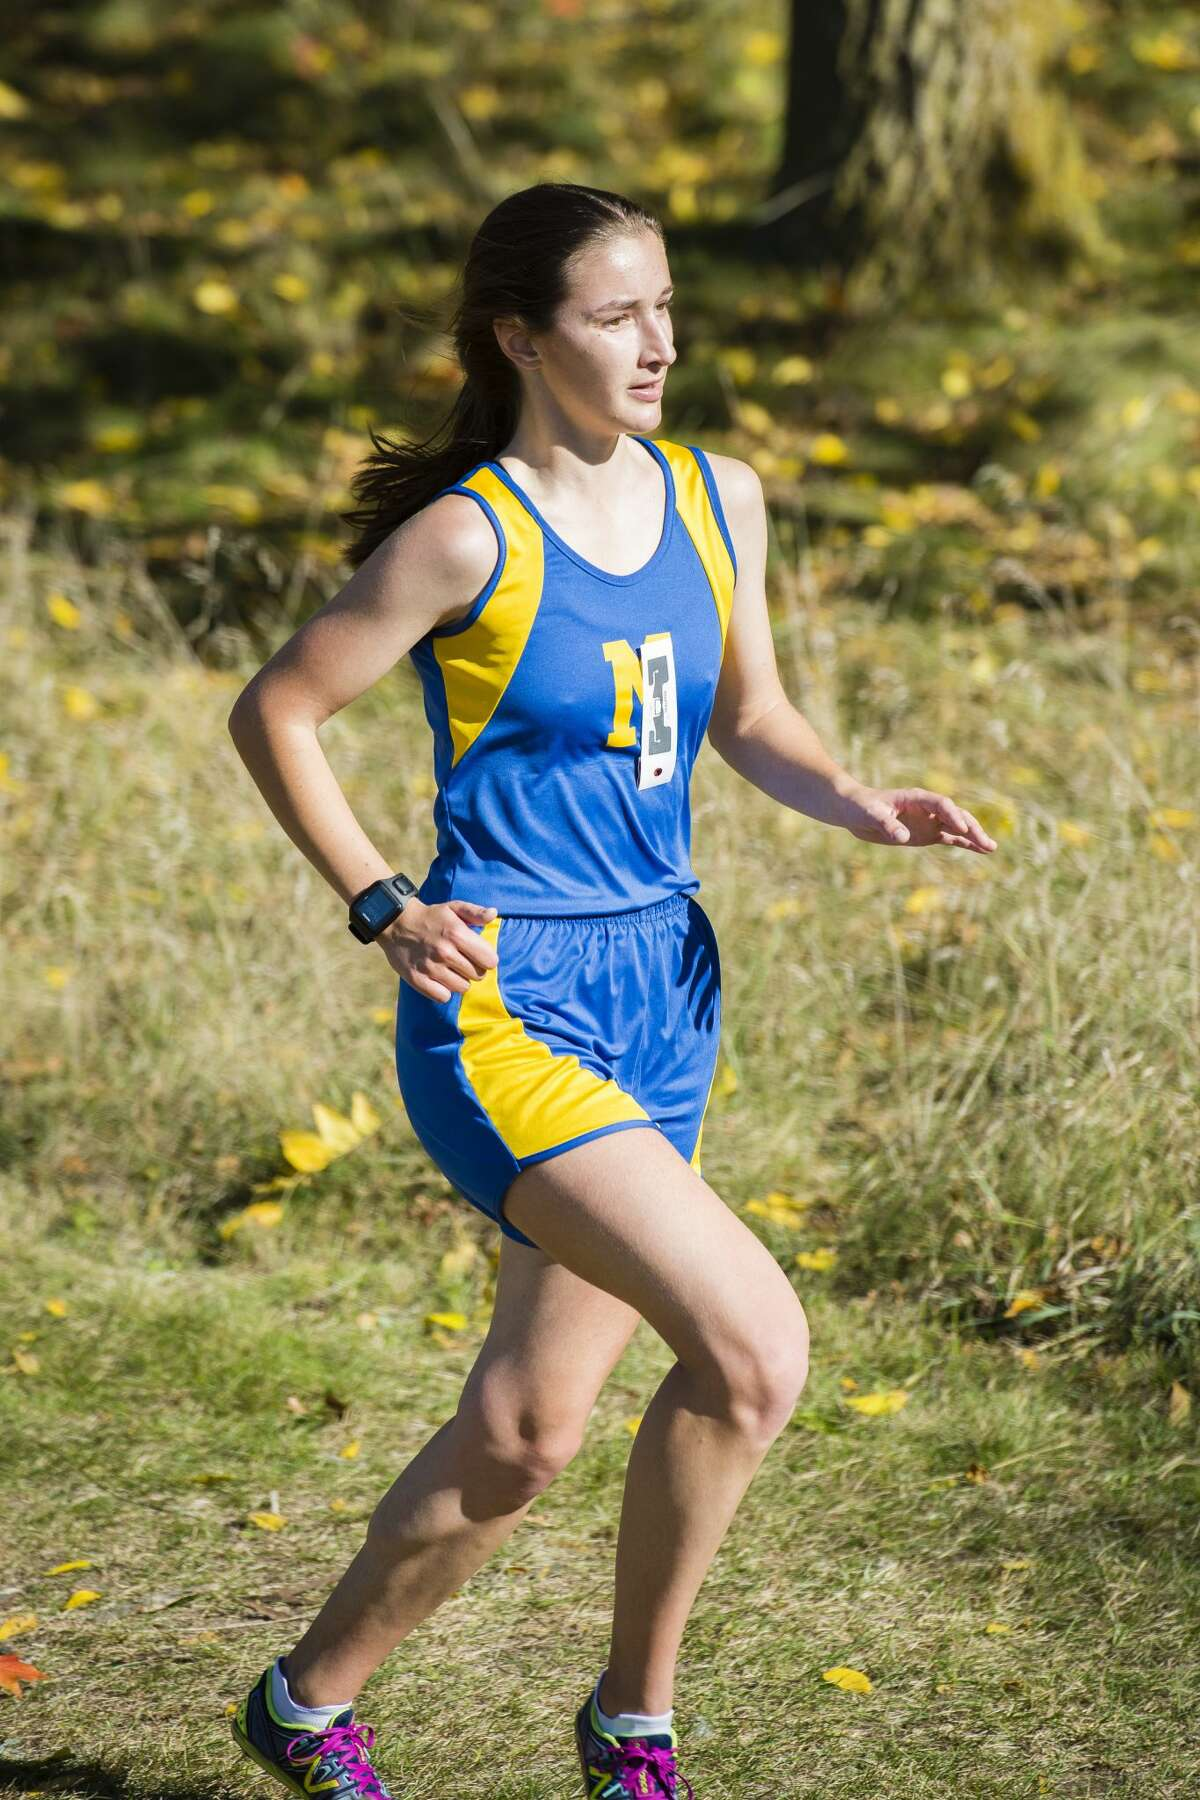 Midland's Emily Yoder runs during a Saginaw Valley League cross country meet in Mount Pleasant on Wednesday, Oct. 18, 2017. (Danielle McGrew Tenbusch/for the Daily News)